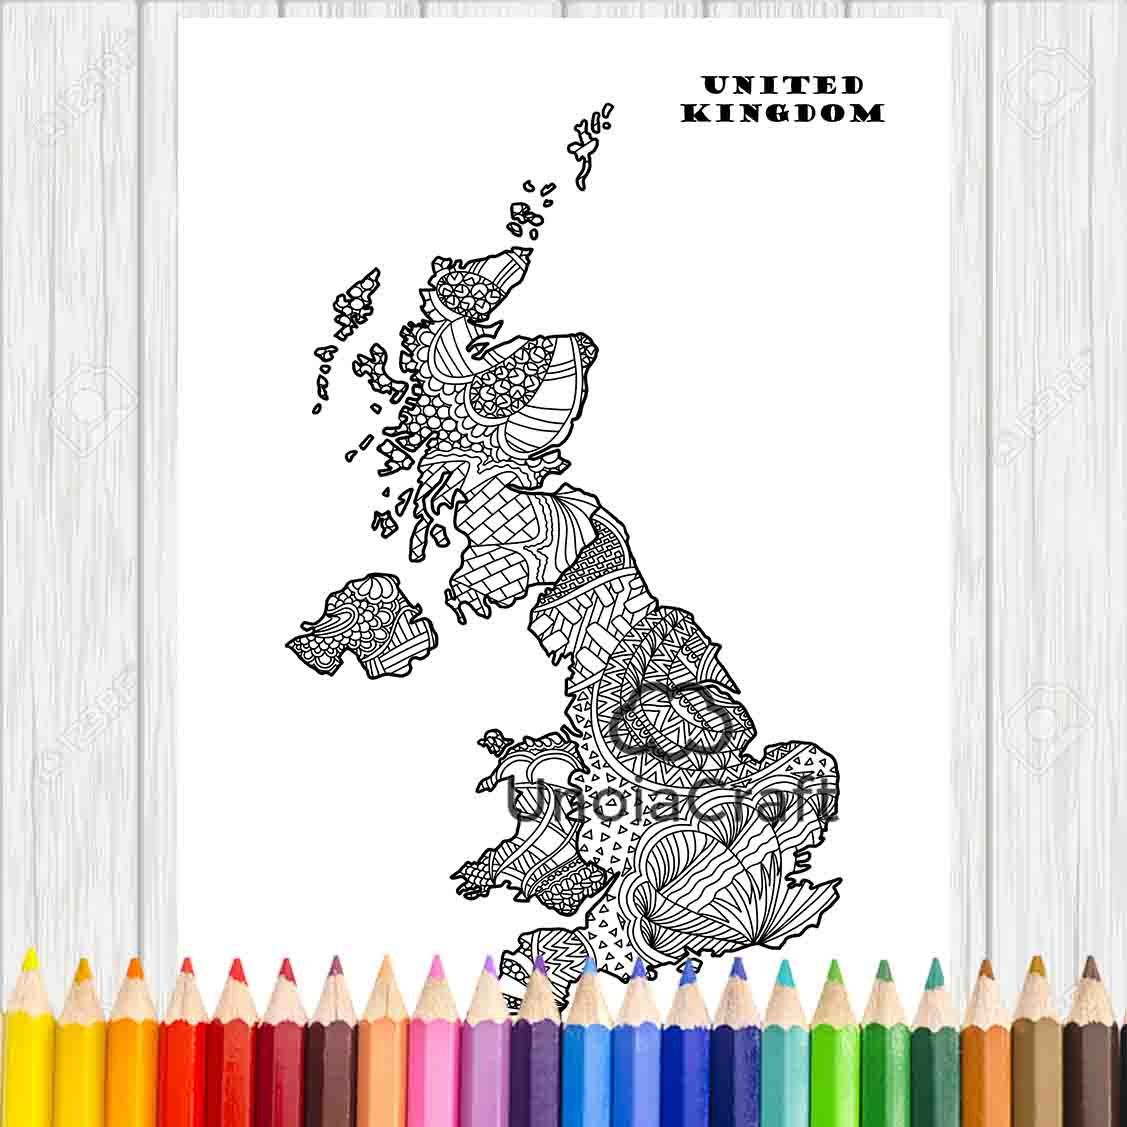 Uk Map Colouring Page United Kingdom Coloring Sheet Map Colouring Book Kids Colouring Book Zentangle Pirate Coloring Pages Coloring Pages Coloring For Kids